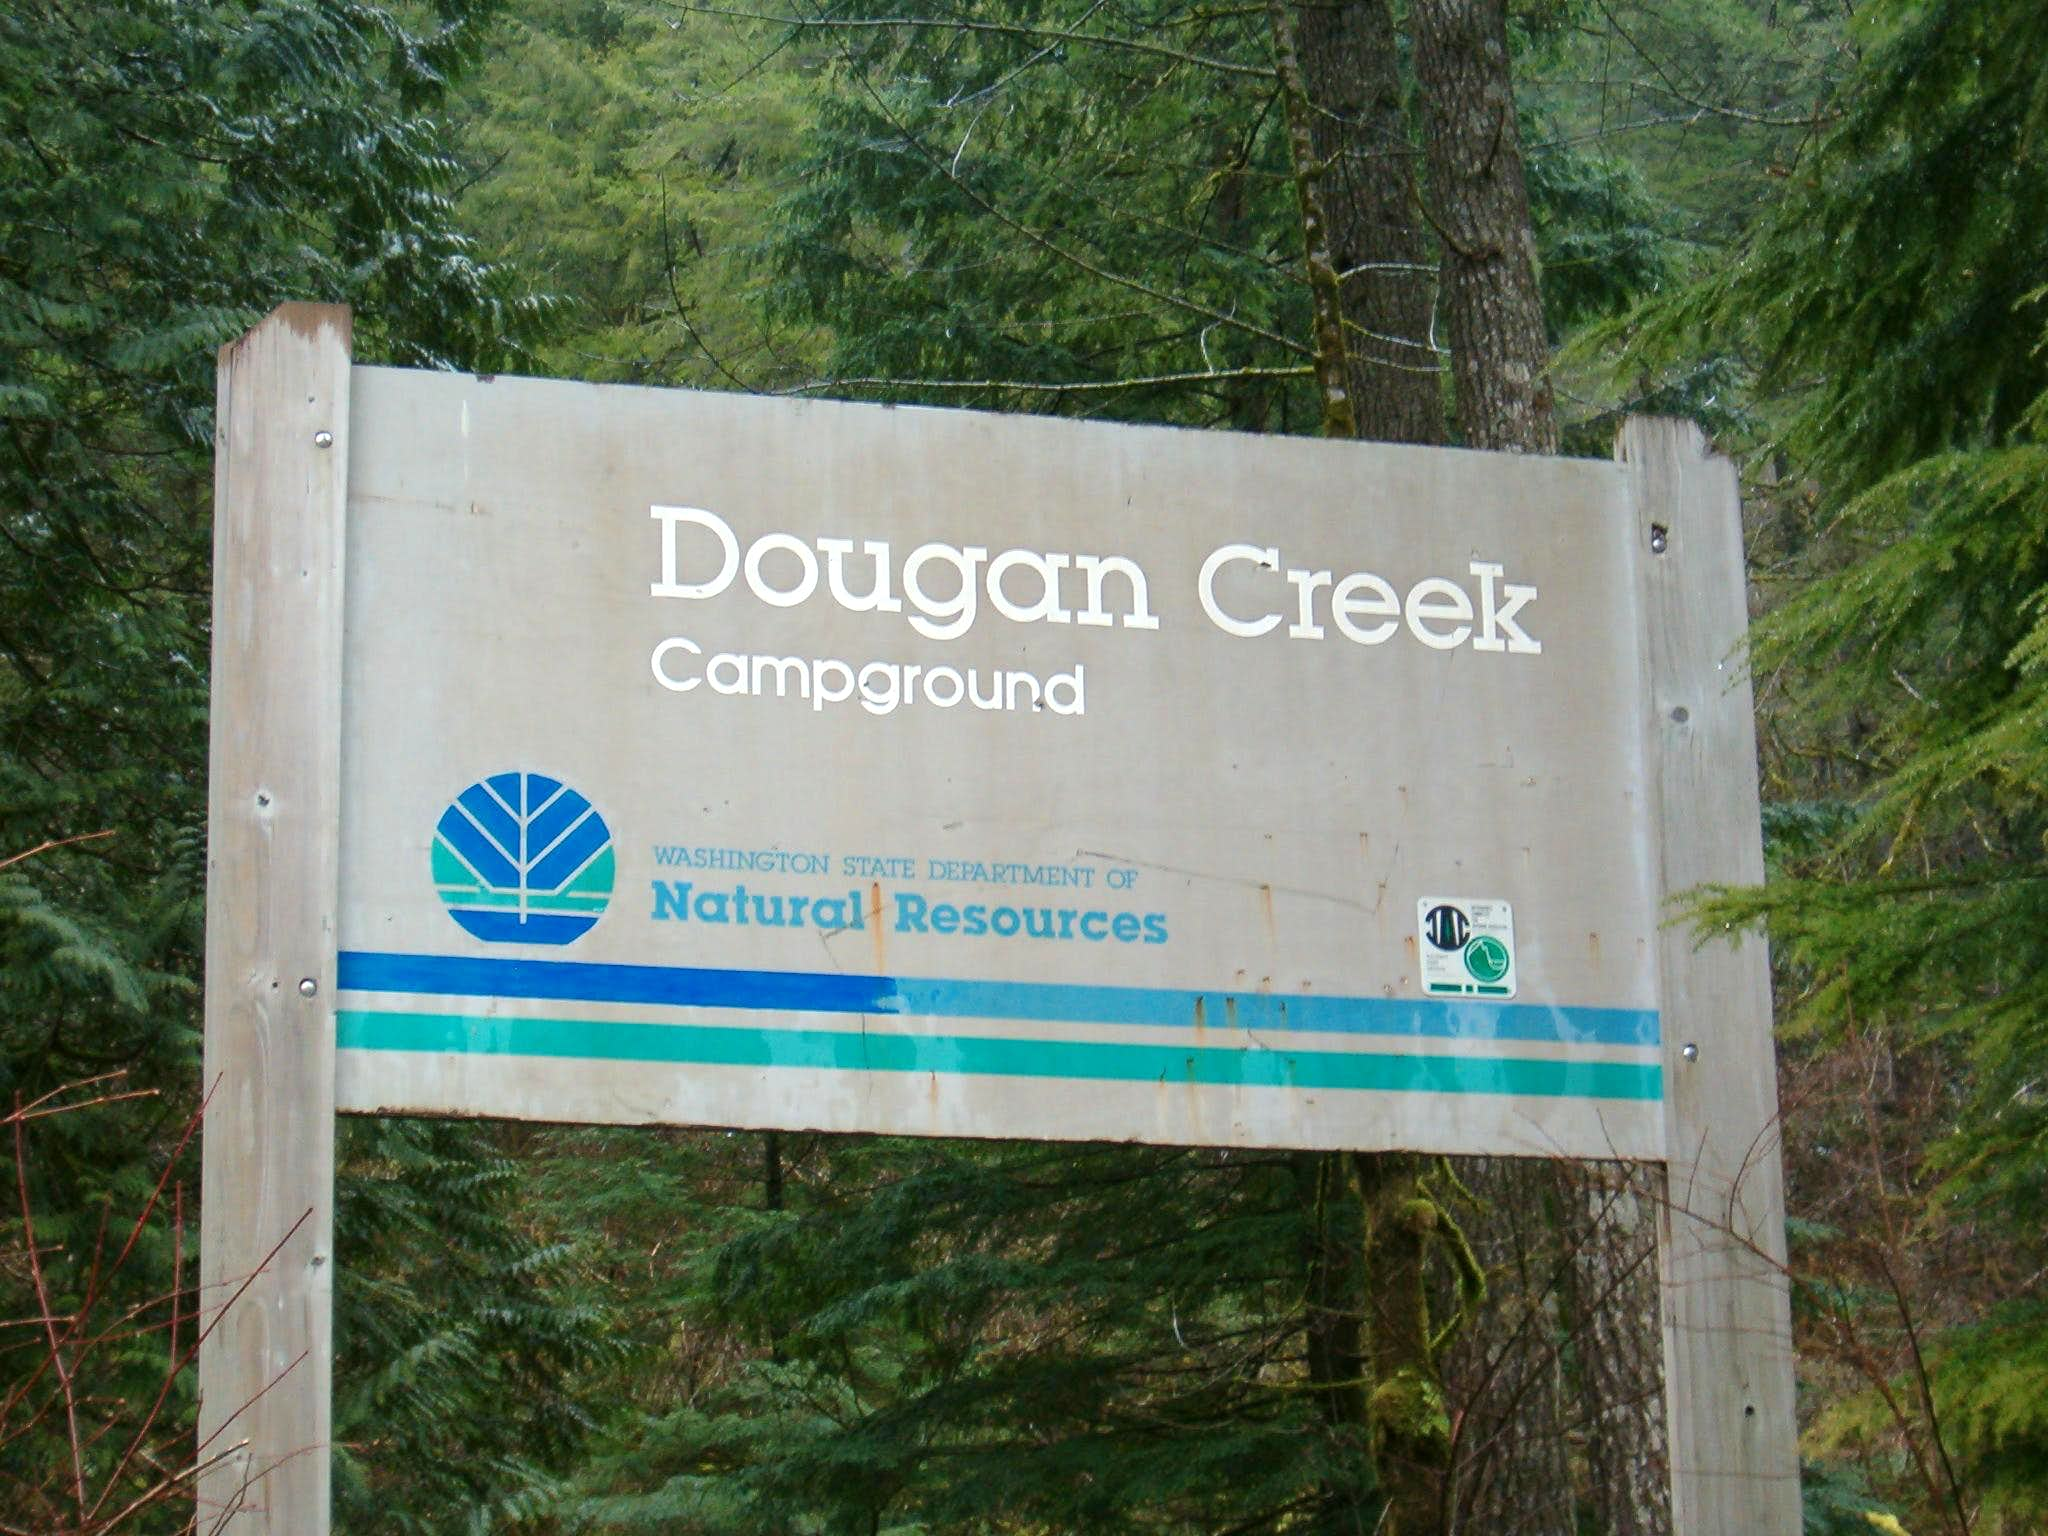 Dougan Creek Campground